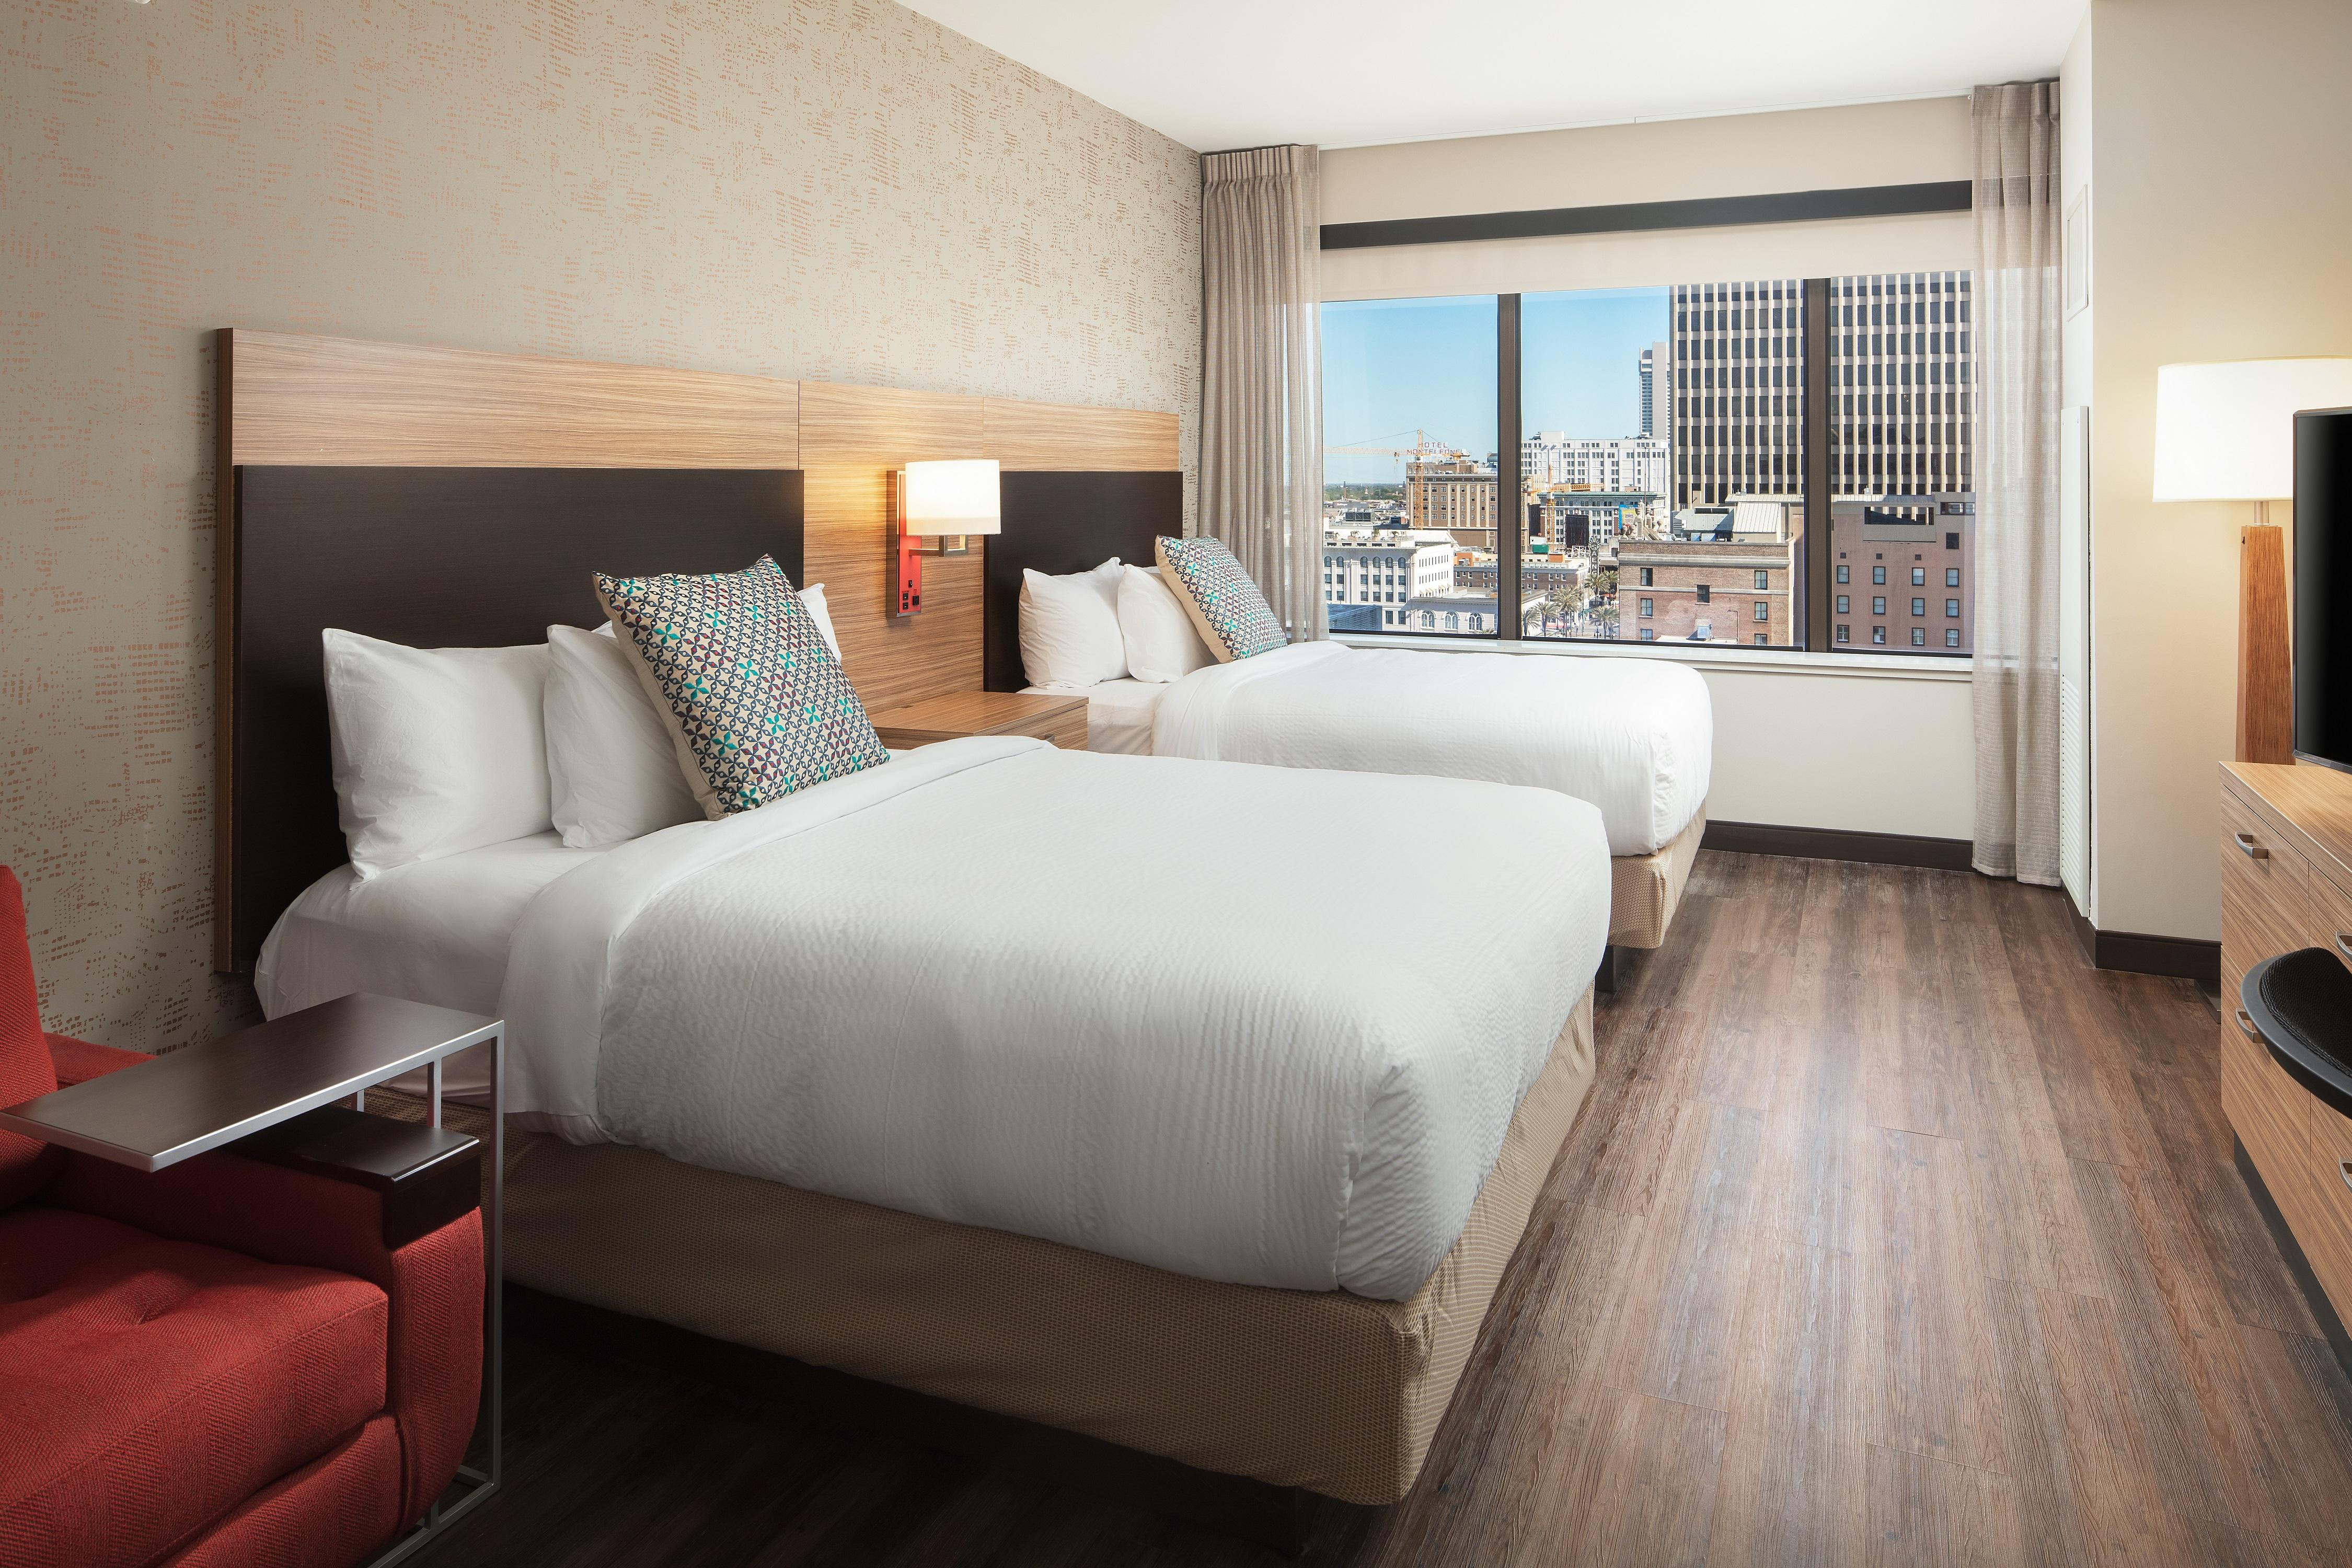 TownePlace Suites by Marriott New Orleans Downtown/Canal Street image 8